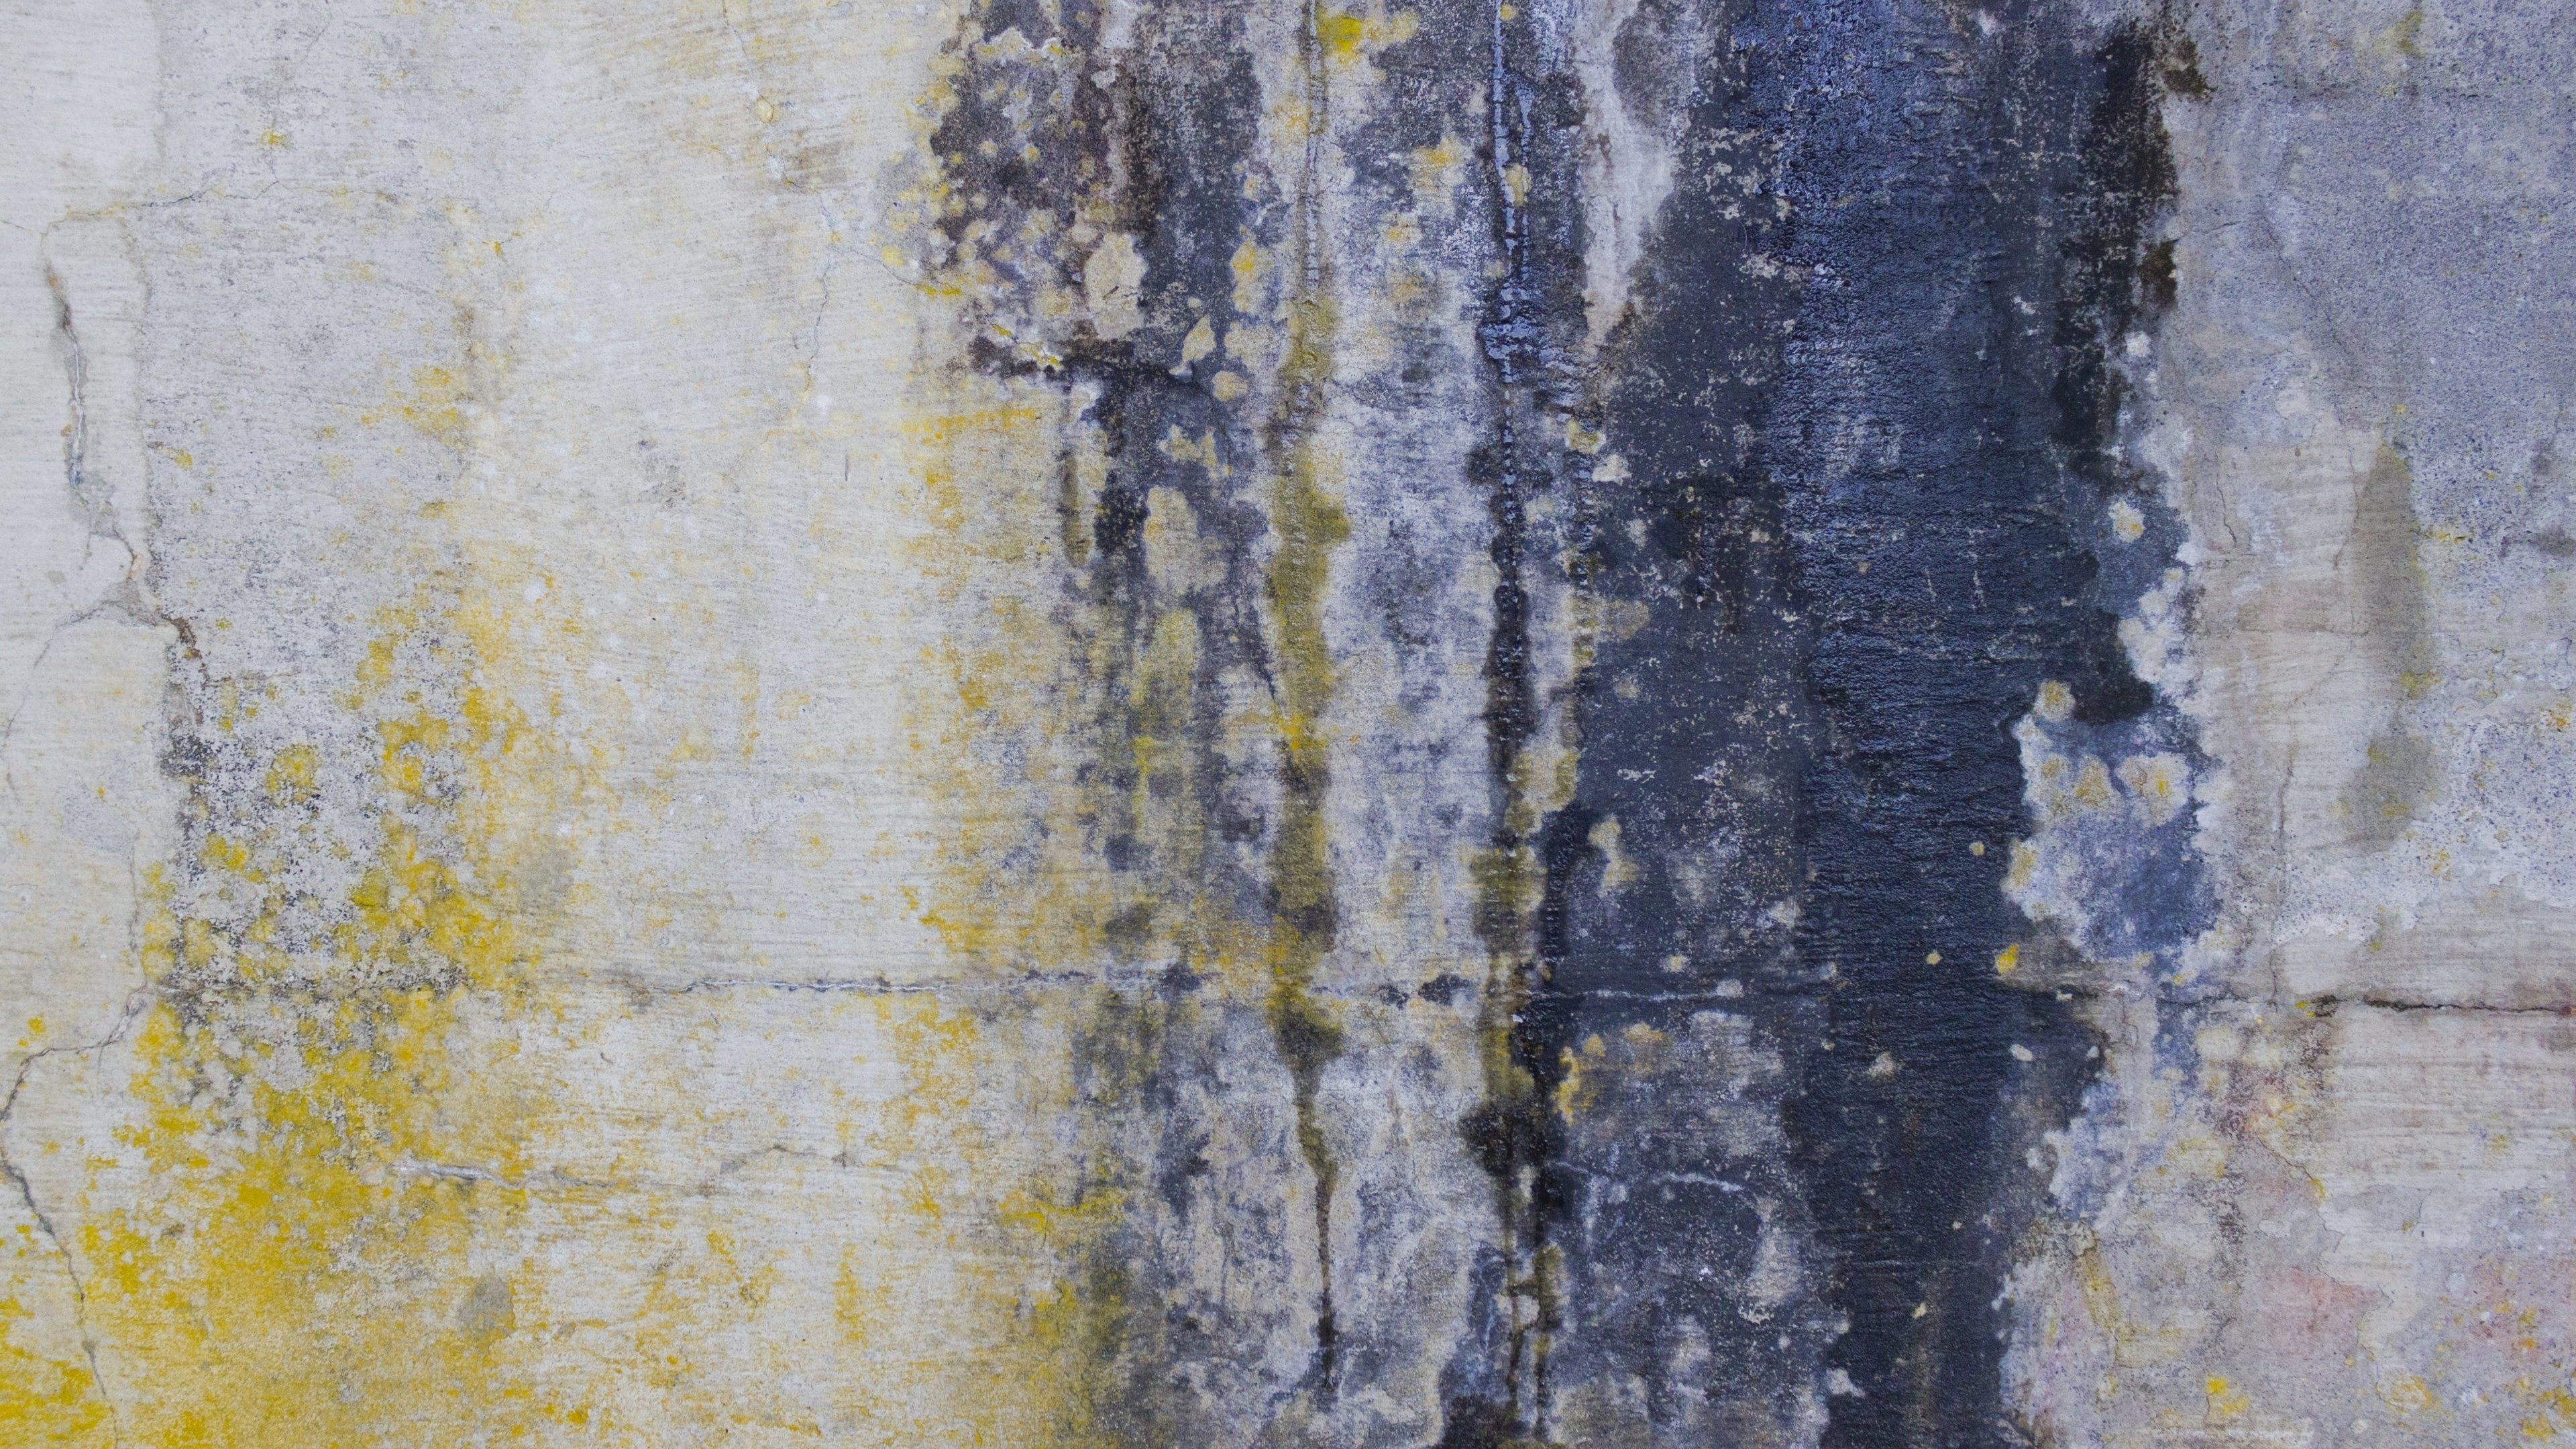 Res: 3840x2160, Grunge Wall Texture